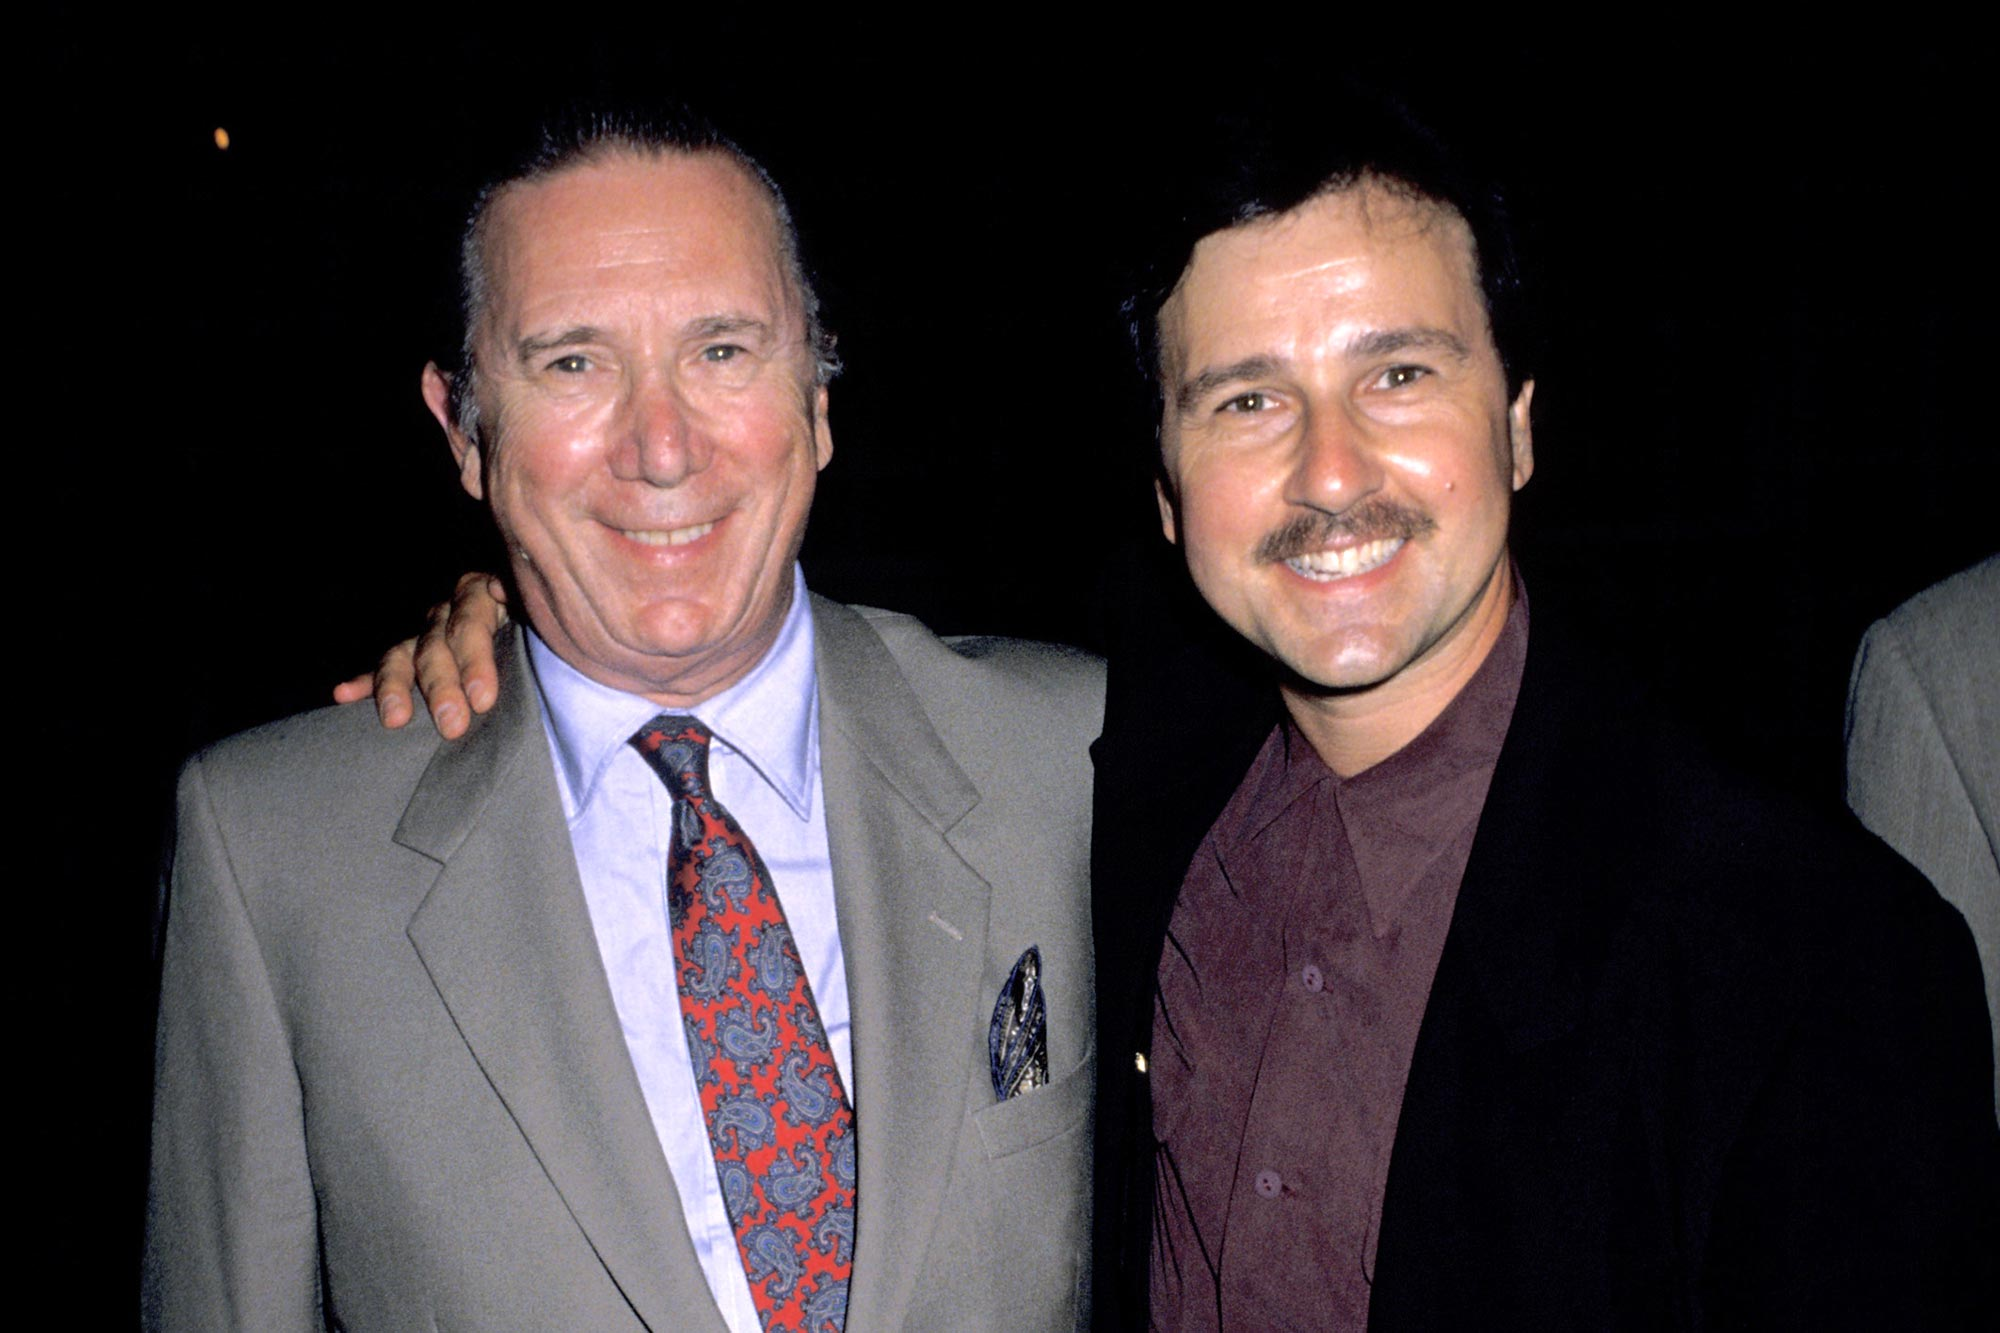 Bruno Kirby and Father Bruce Kirby